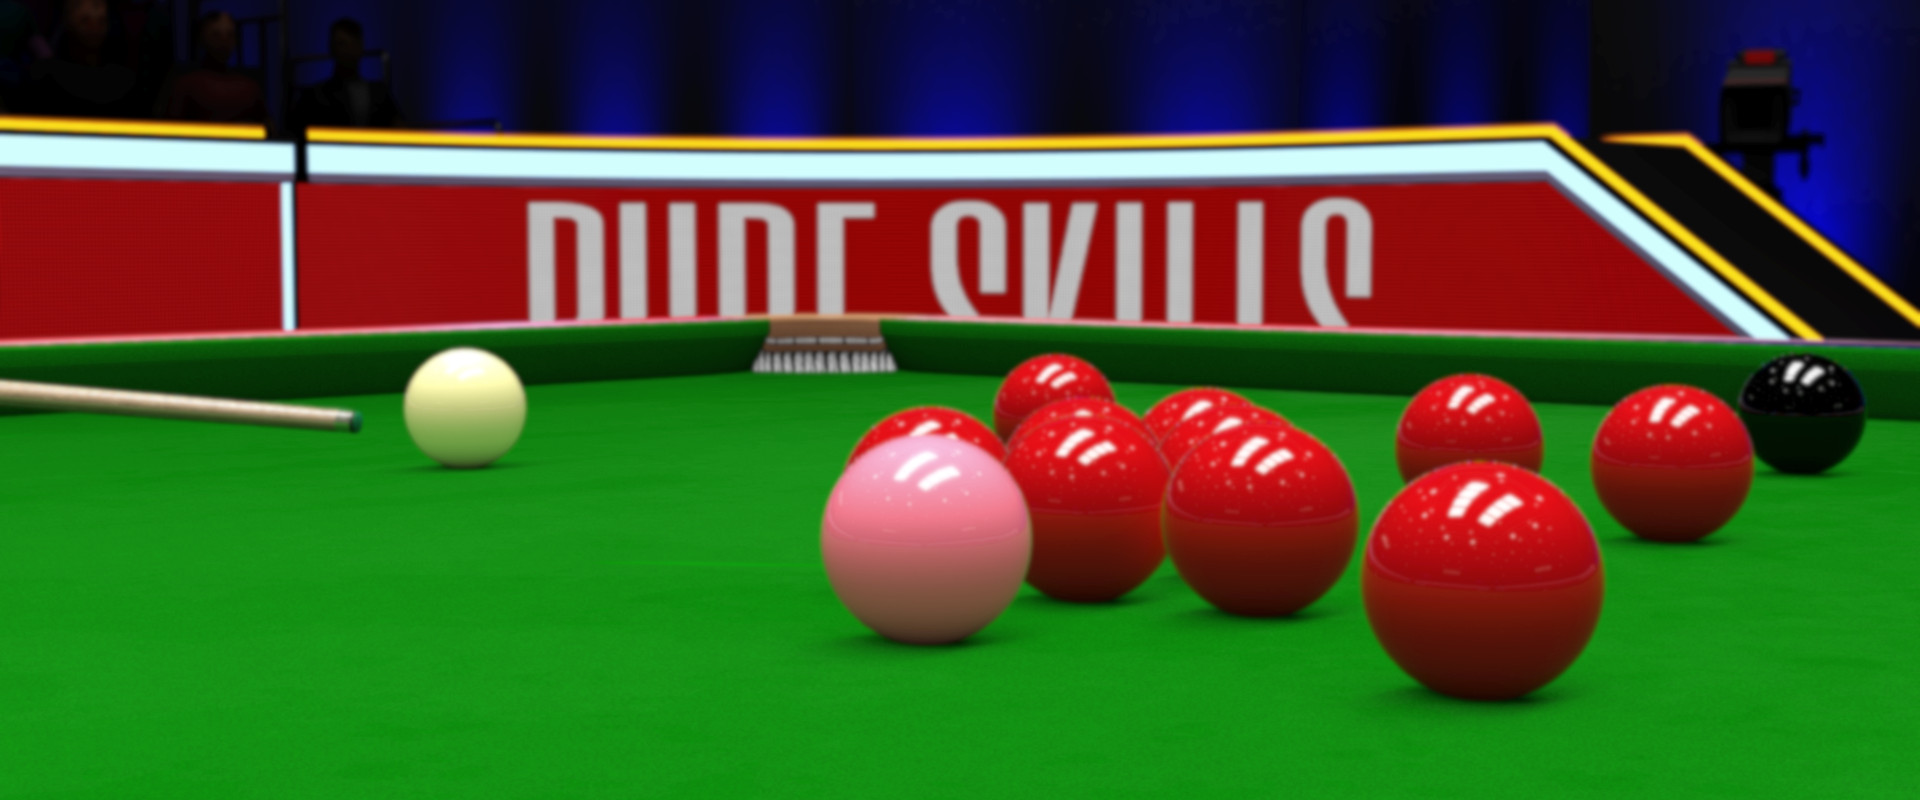 ShootersPool Online Snooker Game